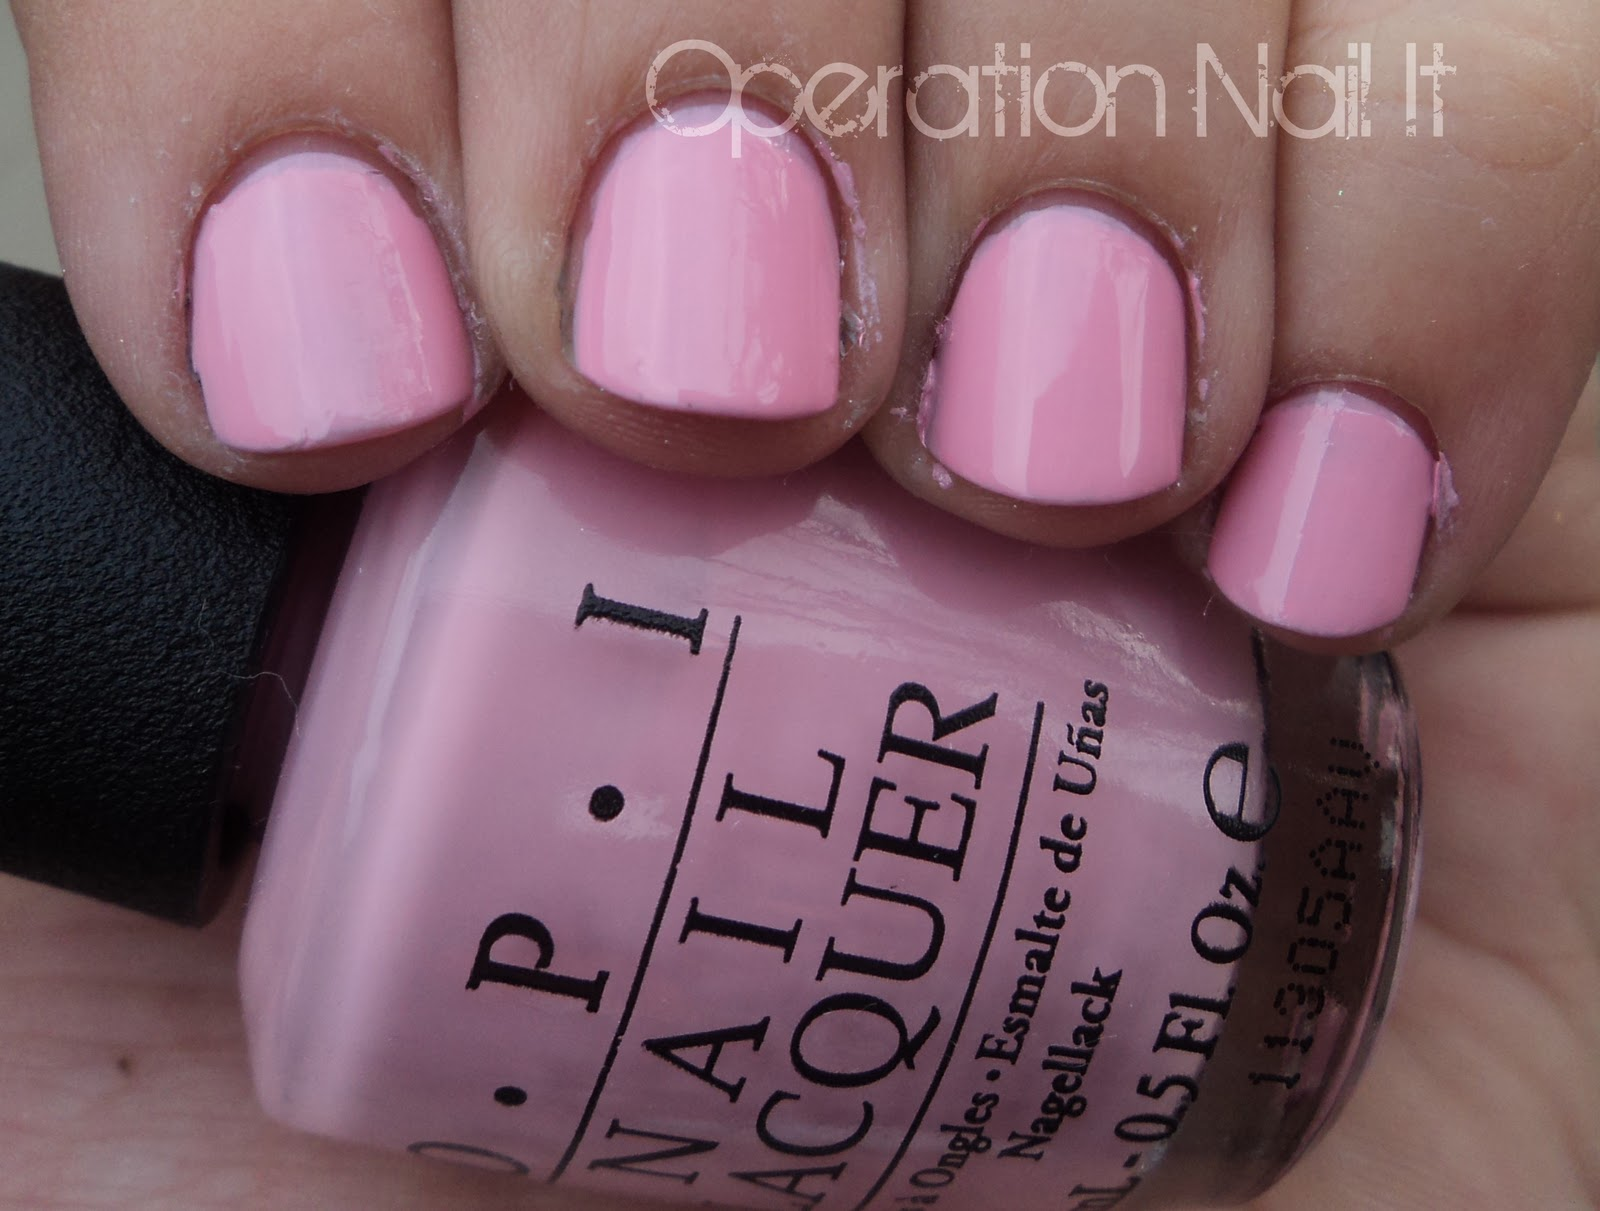 Operation: Nail It!: OPI Nicki Minaj Collection Swatches! + Comparisons!